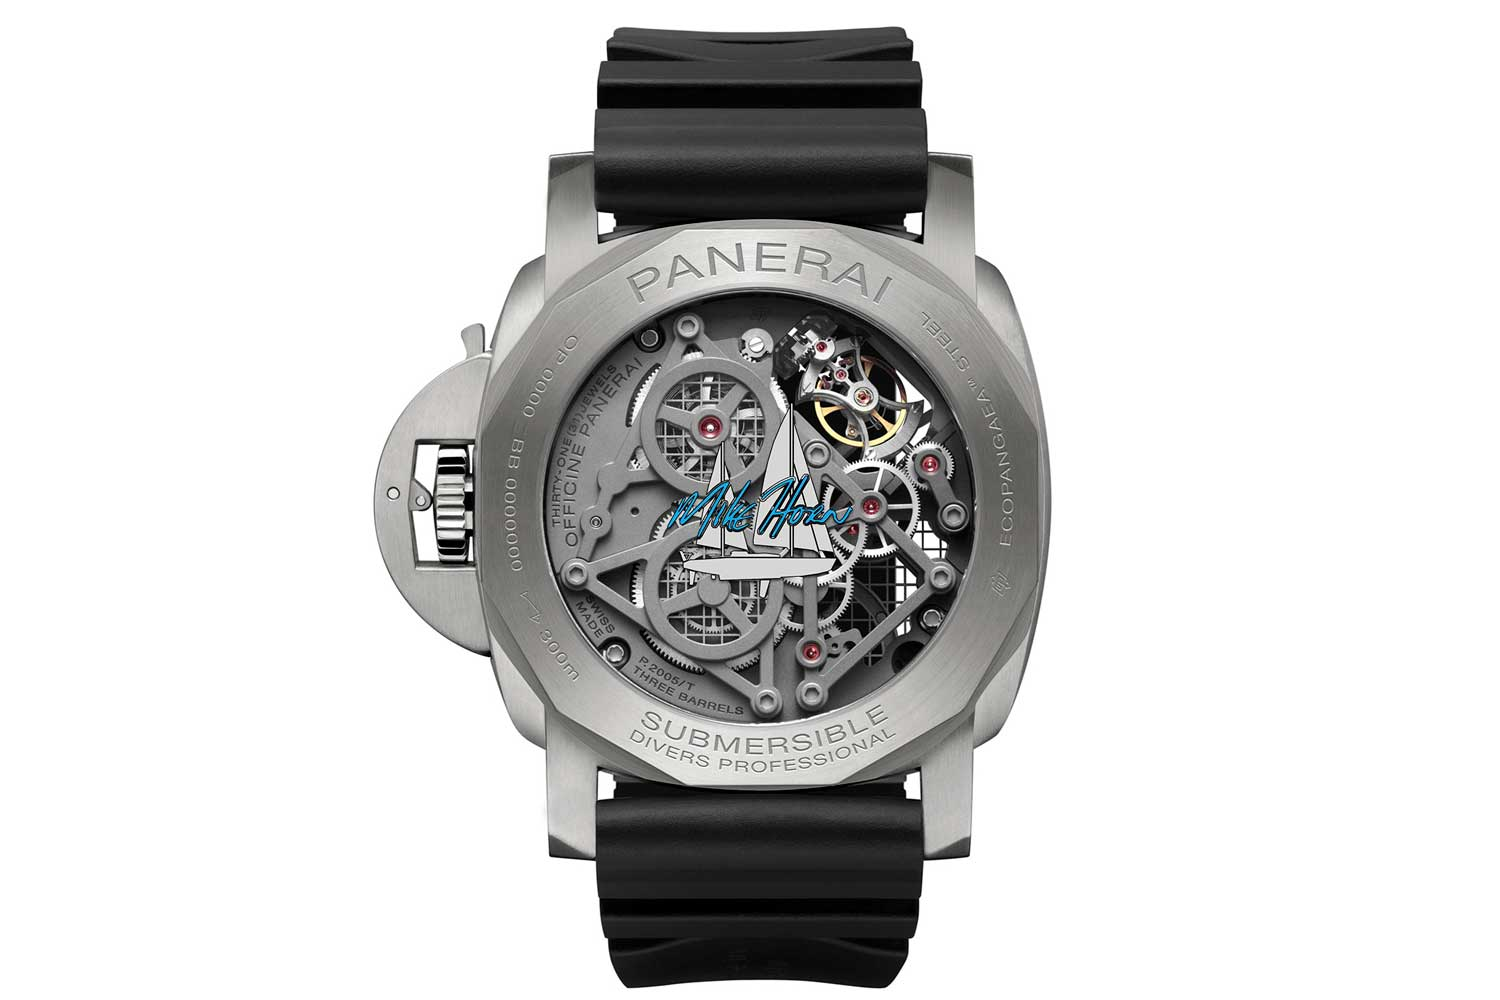 The skeleton movement design allows one to enjoy the view of the tourbillon from both sides, and the back bears Mike Horn's signature in Arctic blue